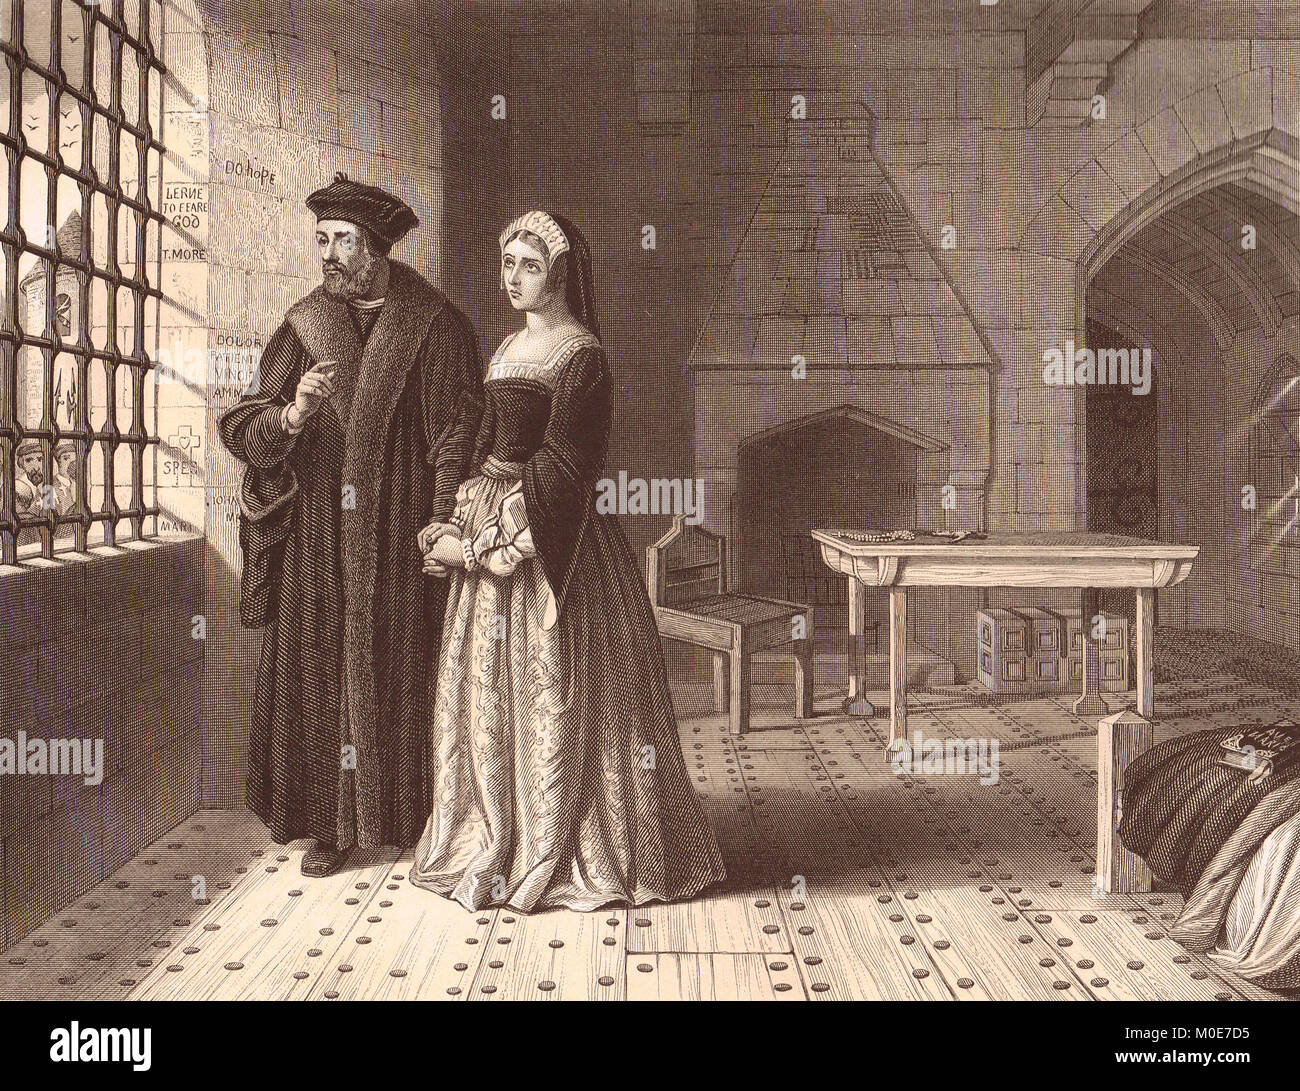 Sir Thomas More, in Jail 1535, visited by his daughter Margaret Roper - Stock Image